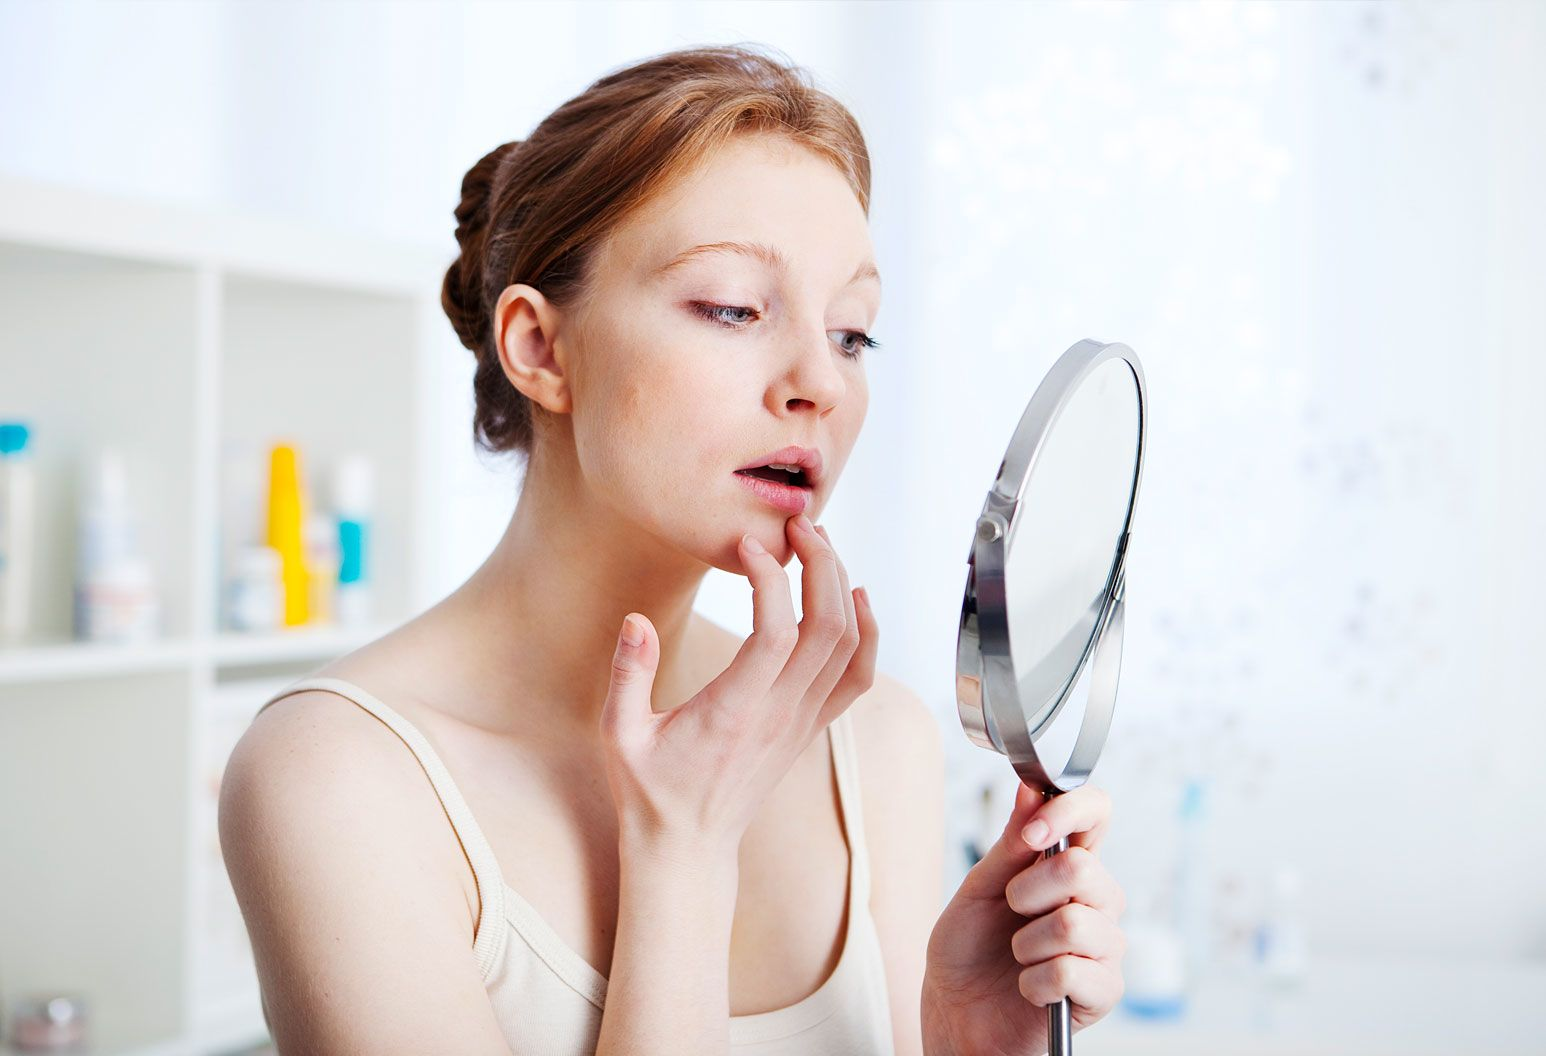 A young woman with red hair and a white tank top is in her bathroom looking into a mirror. Her finger is gently touching her lip and her other hand is holding a silver mirror.